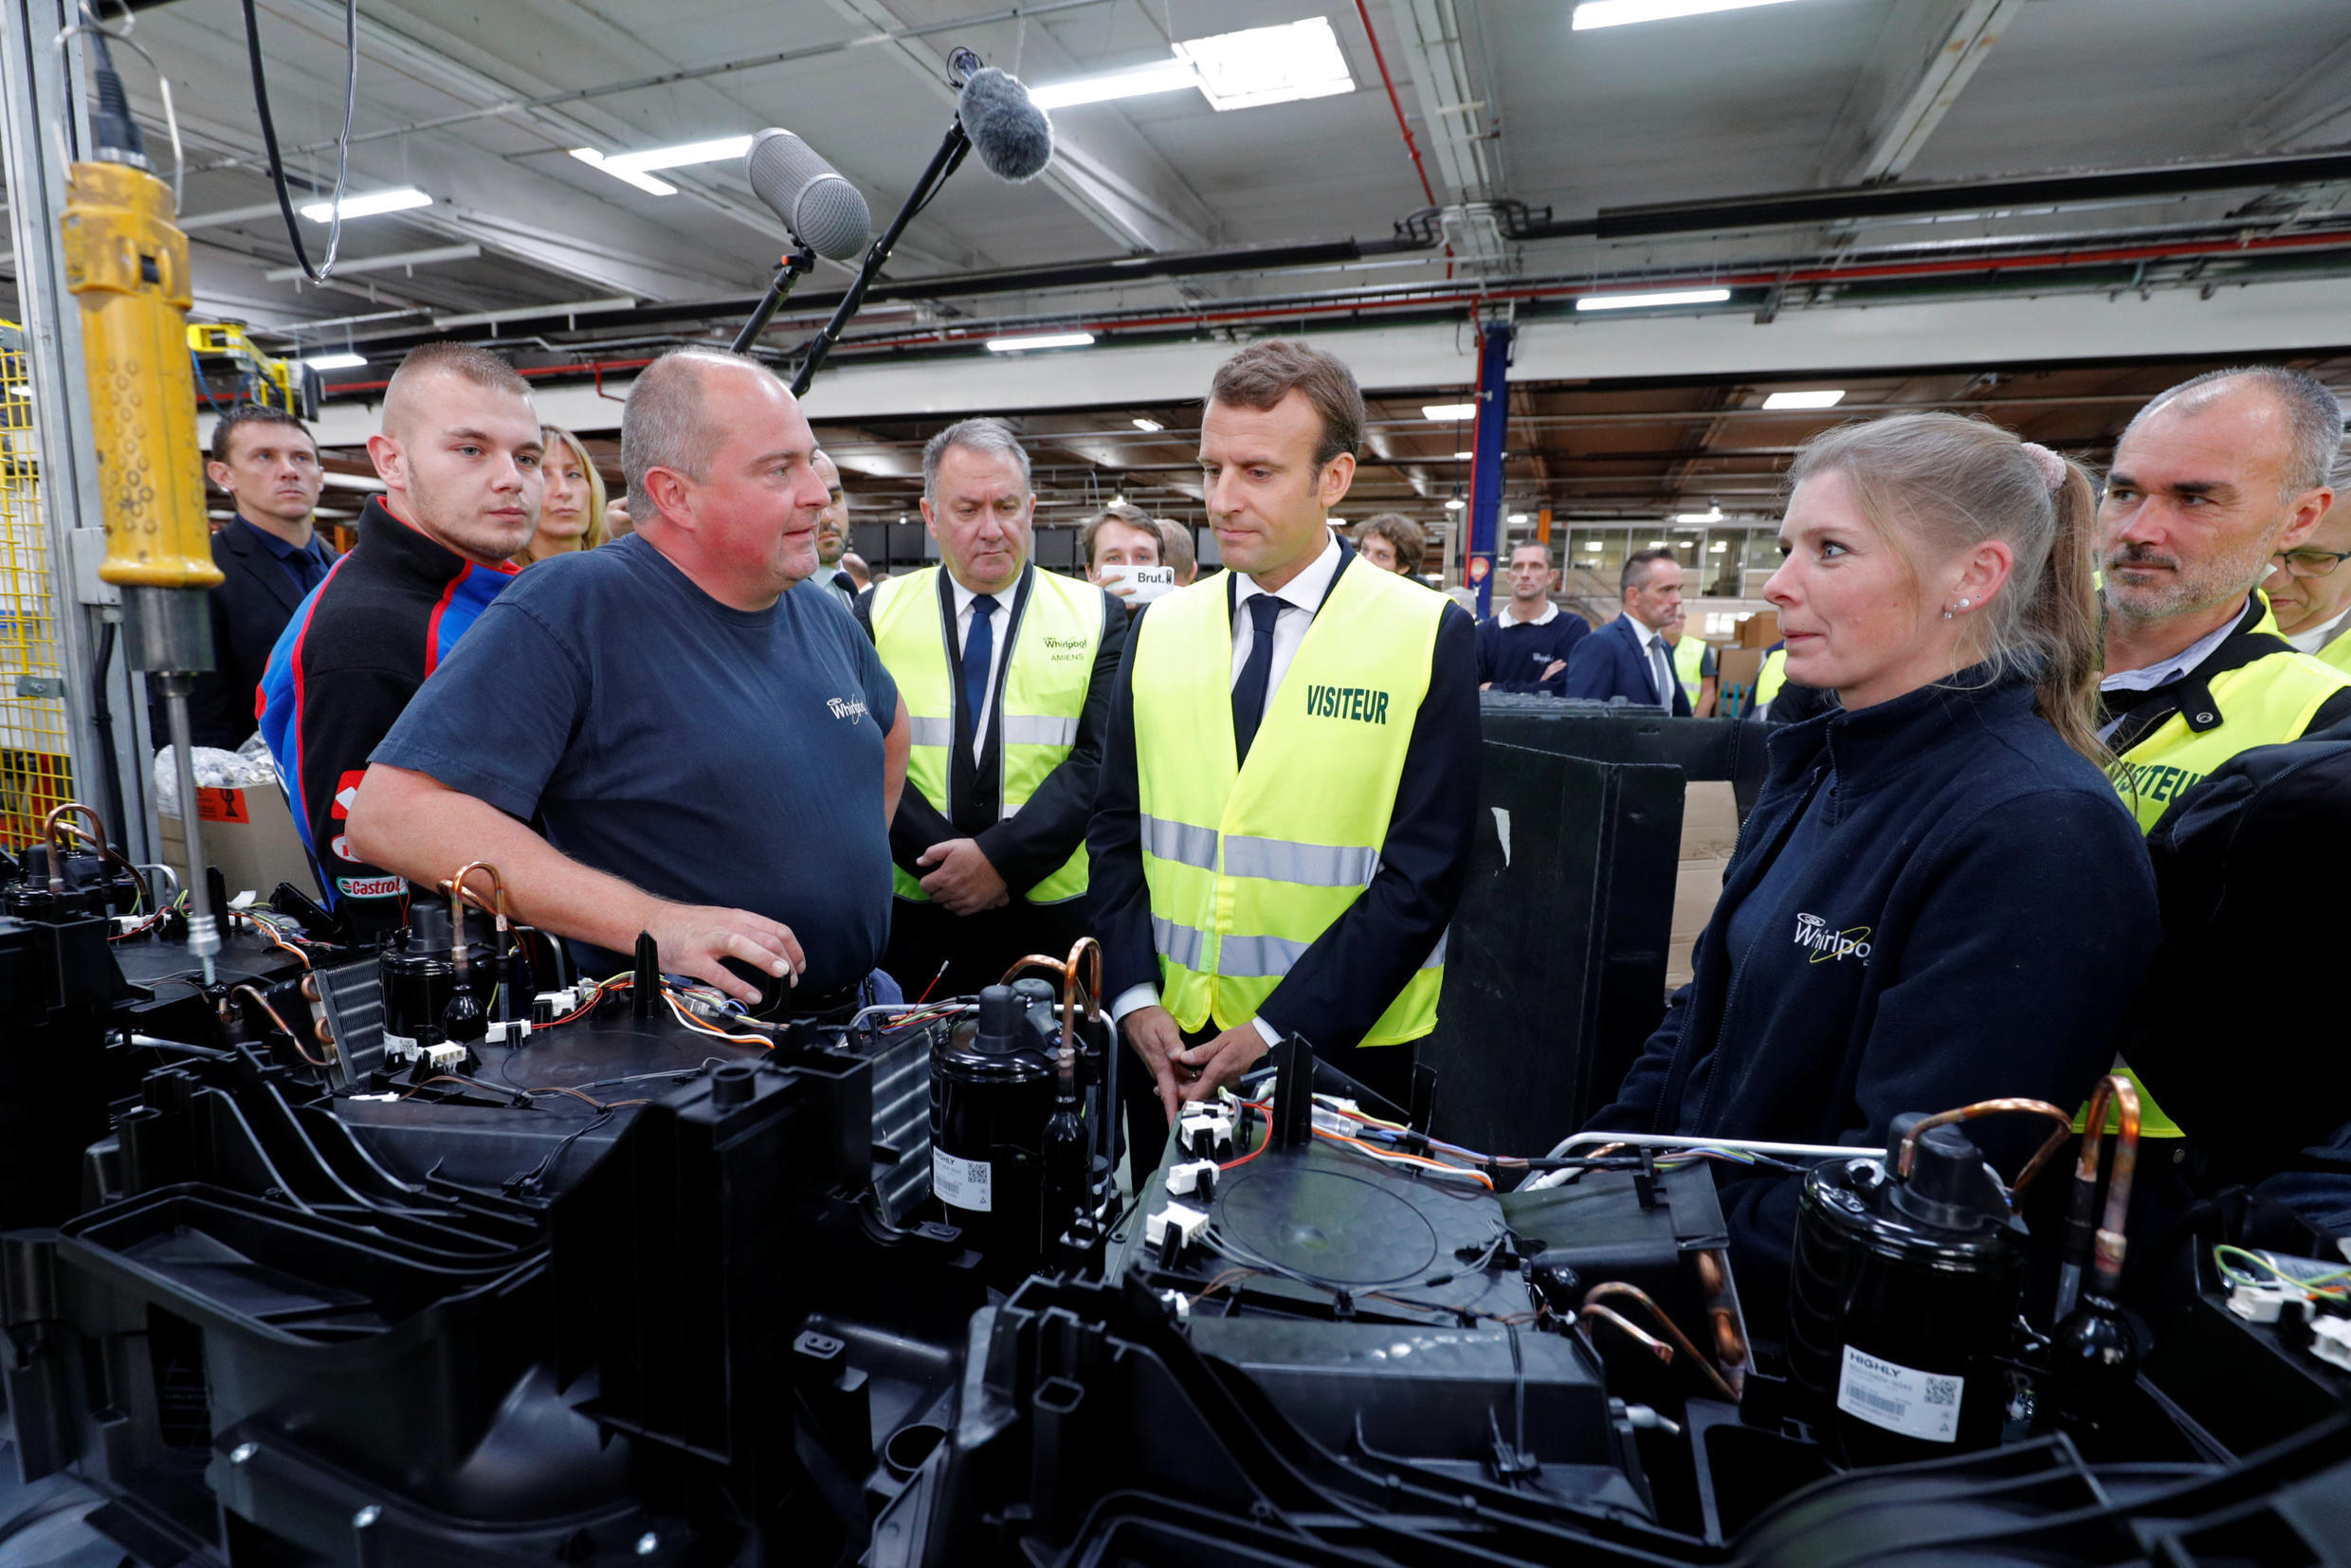 French President Emmanuel Macron talks with Whirlpool employees during a visit at the company's factory in Amiens, France, October 3, 2017.